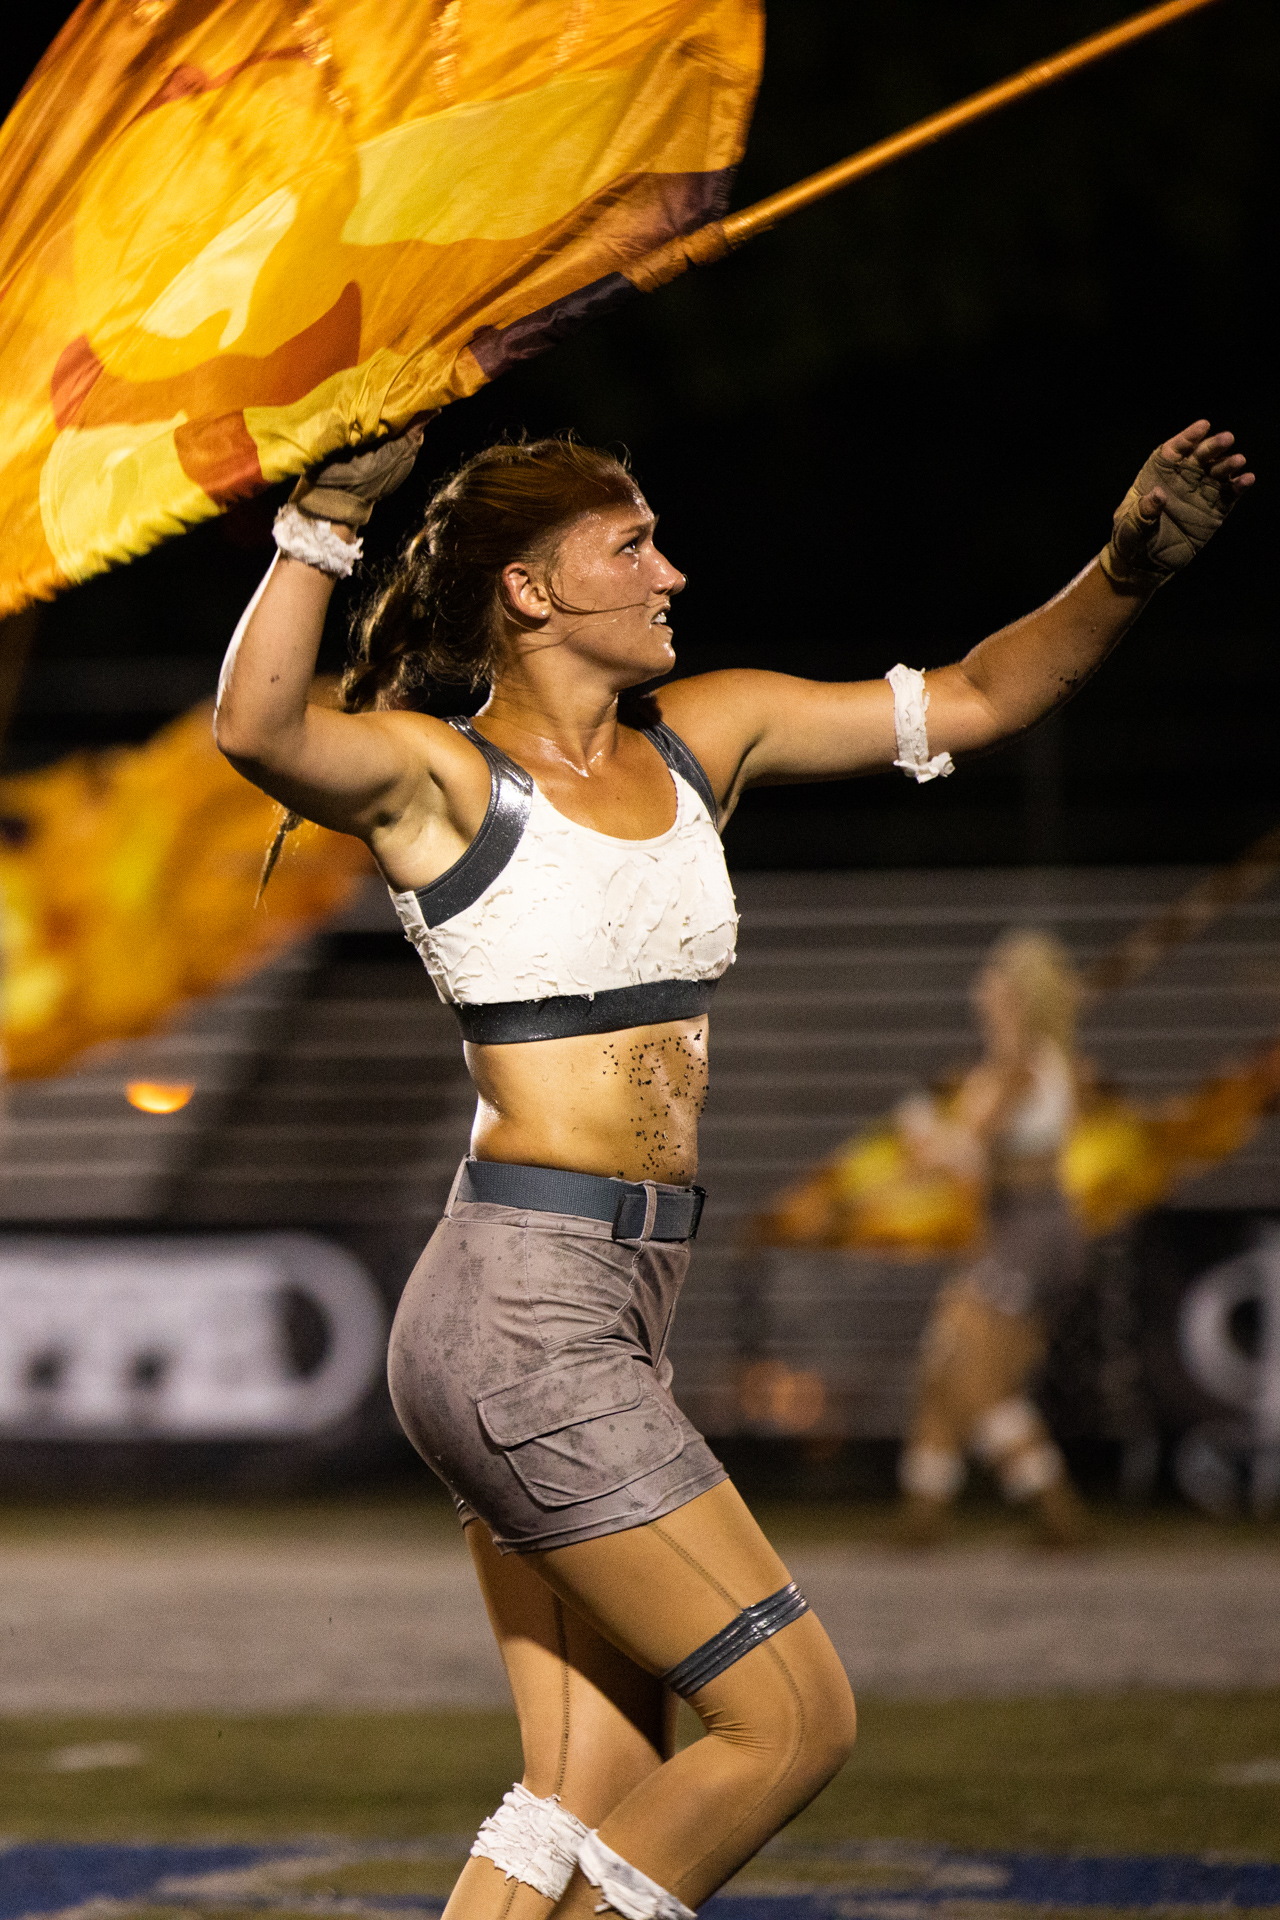 07 - BostonCrusaders2019_Goliath (6 of 9).jpg